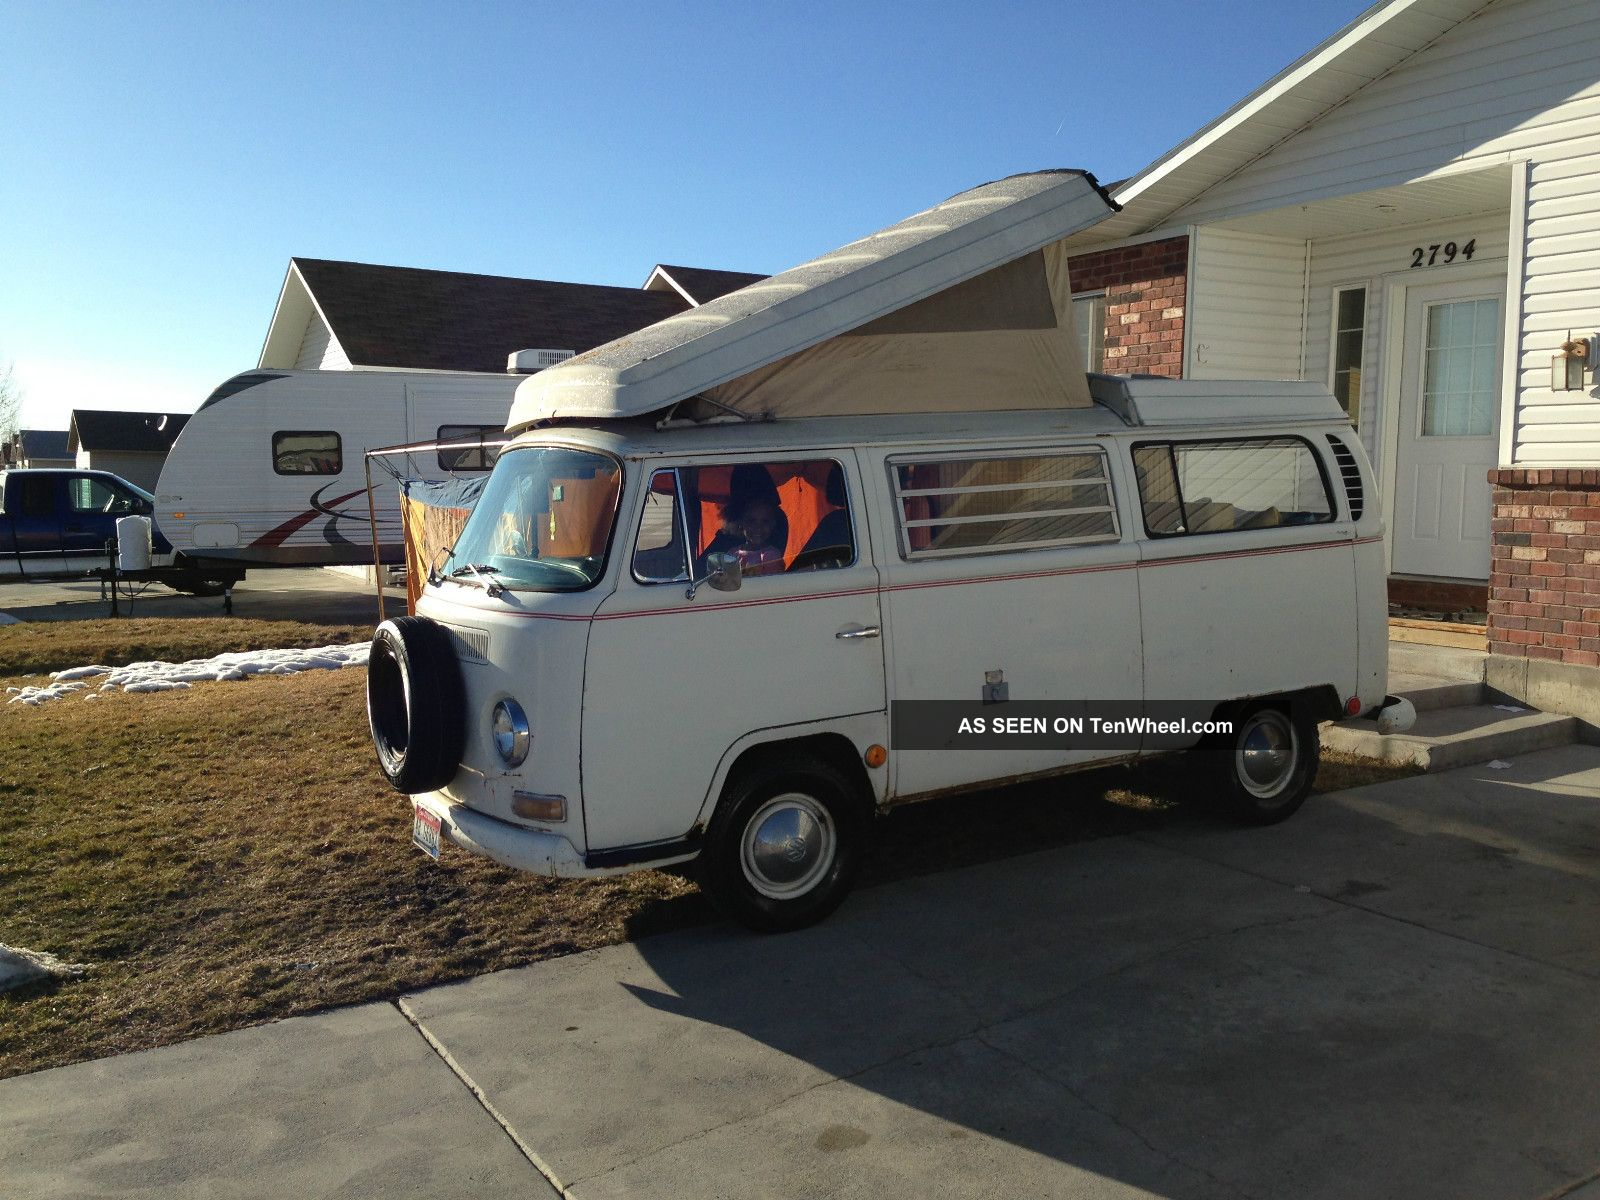 ar vintage phillips wp a michael off give dixie florida rentals oldscool bus flashback their vans campers volkswagen camper trippers ponnath located vw at road show and